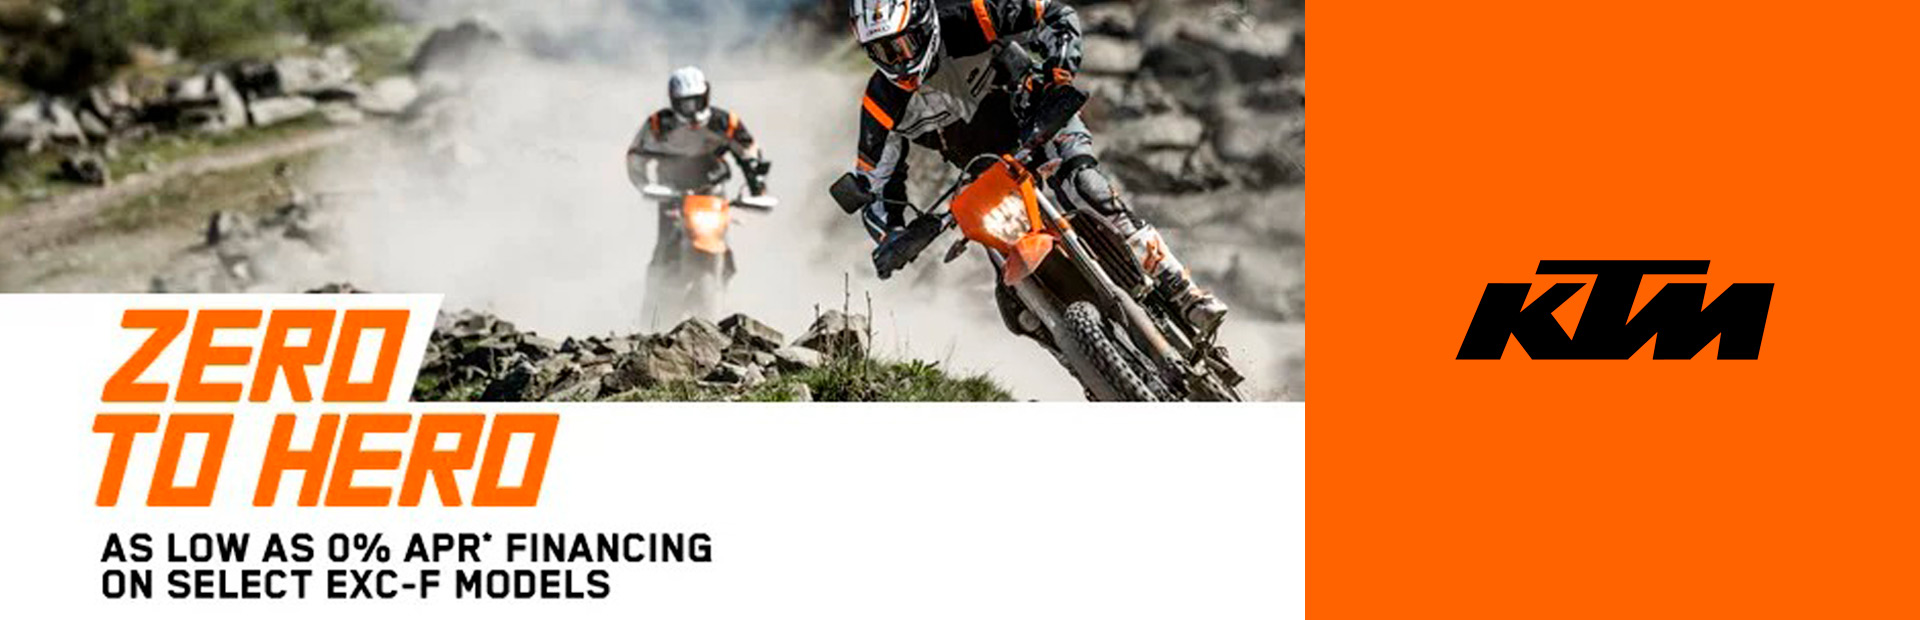 KTM: ZERO TO HERO OFFROAD